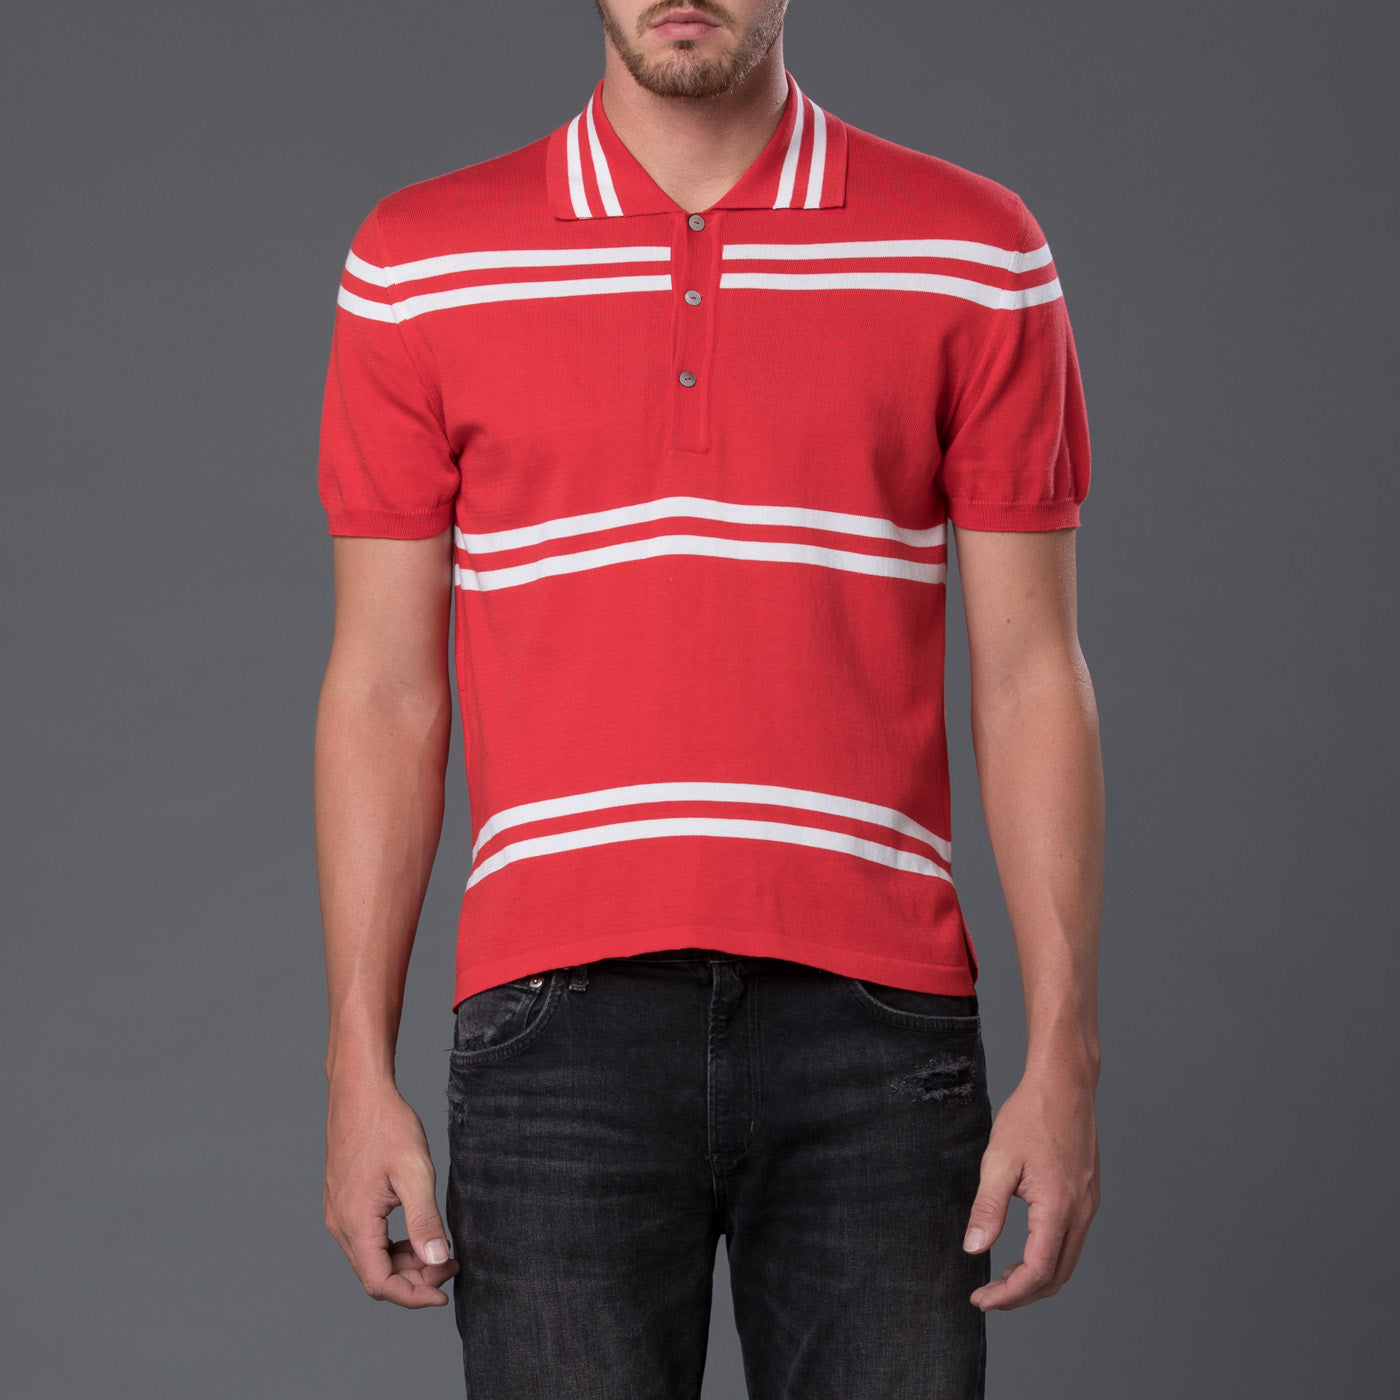 David Hart Red Striped Polo